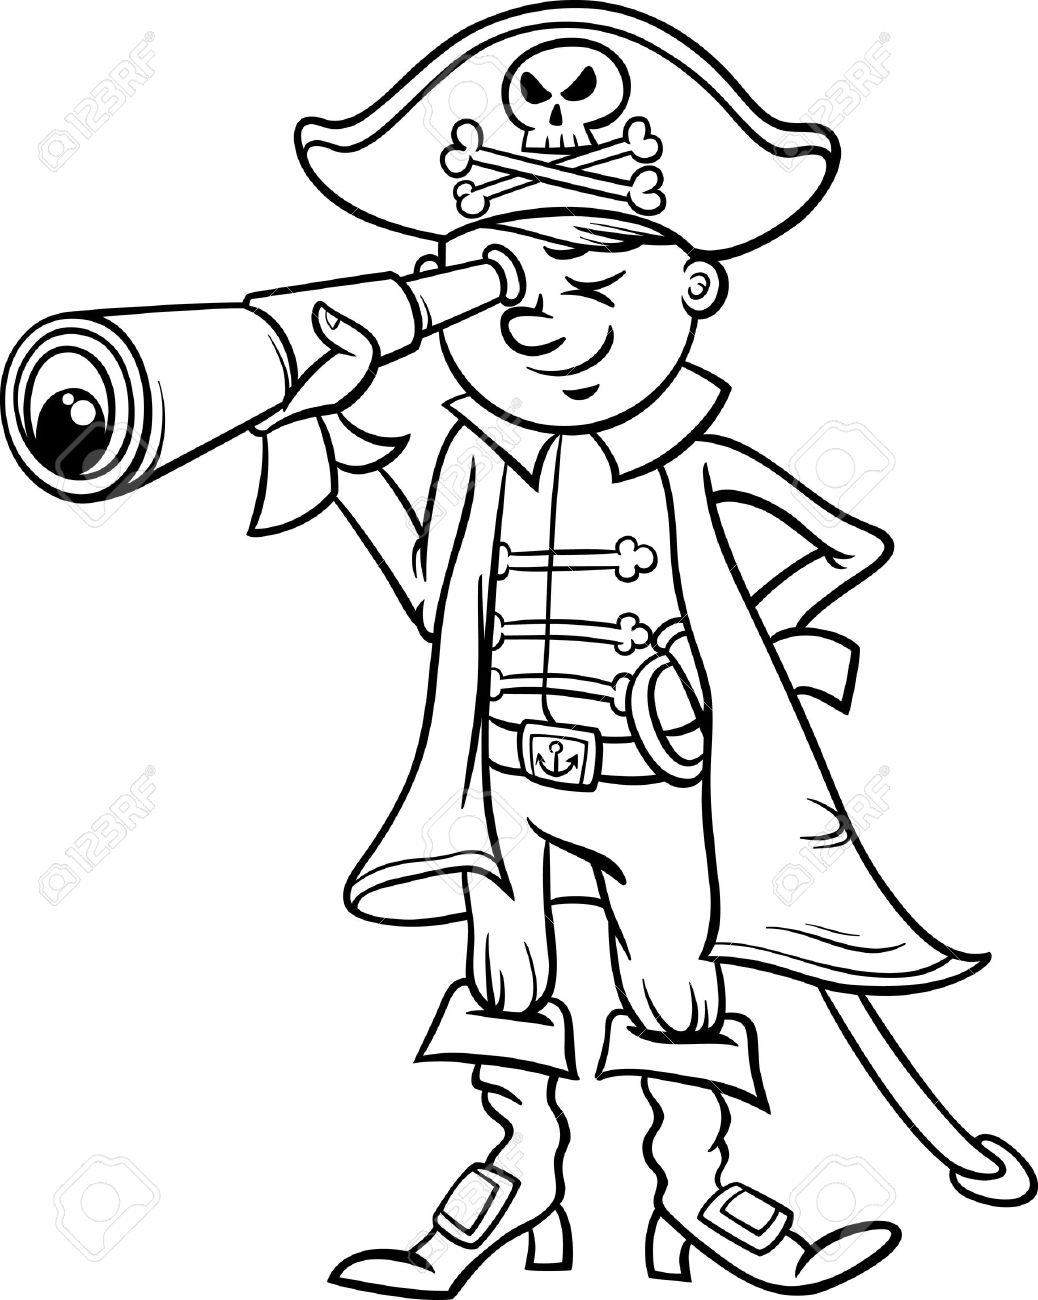 1038x1300 Black And White Cartoon Illustration Of Funny Pirate Or Corsair